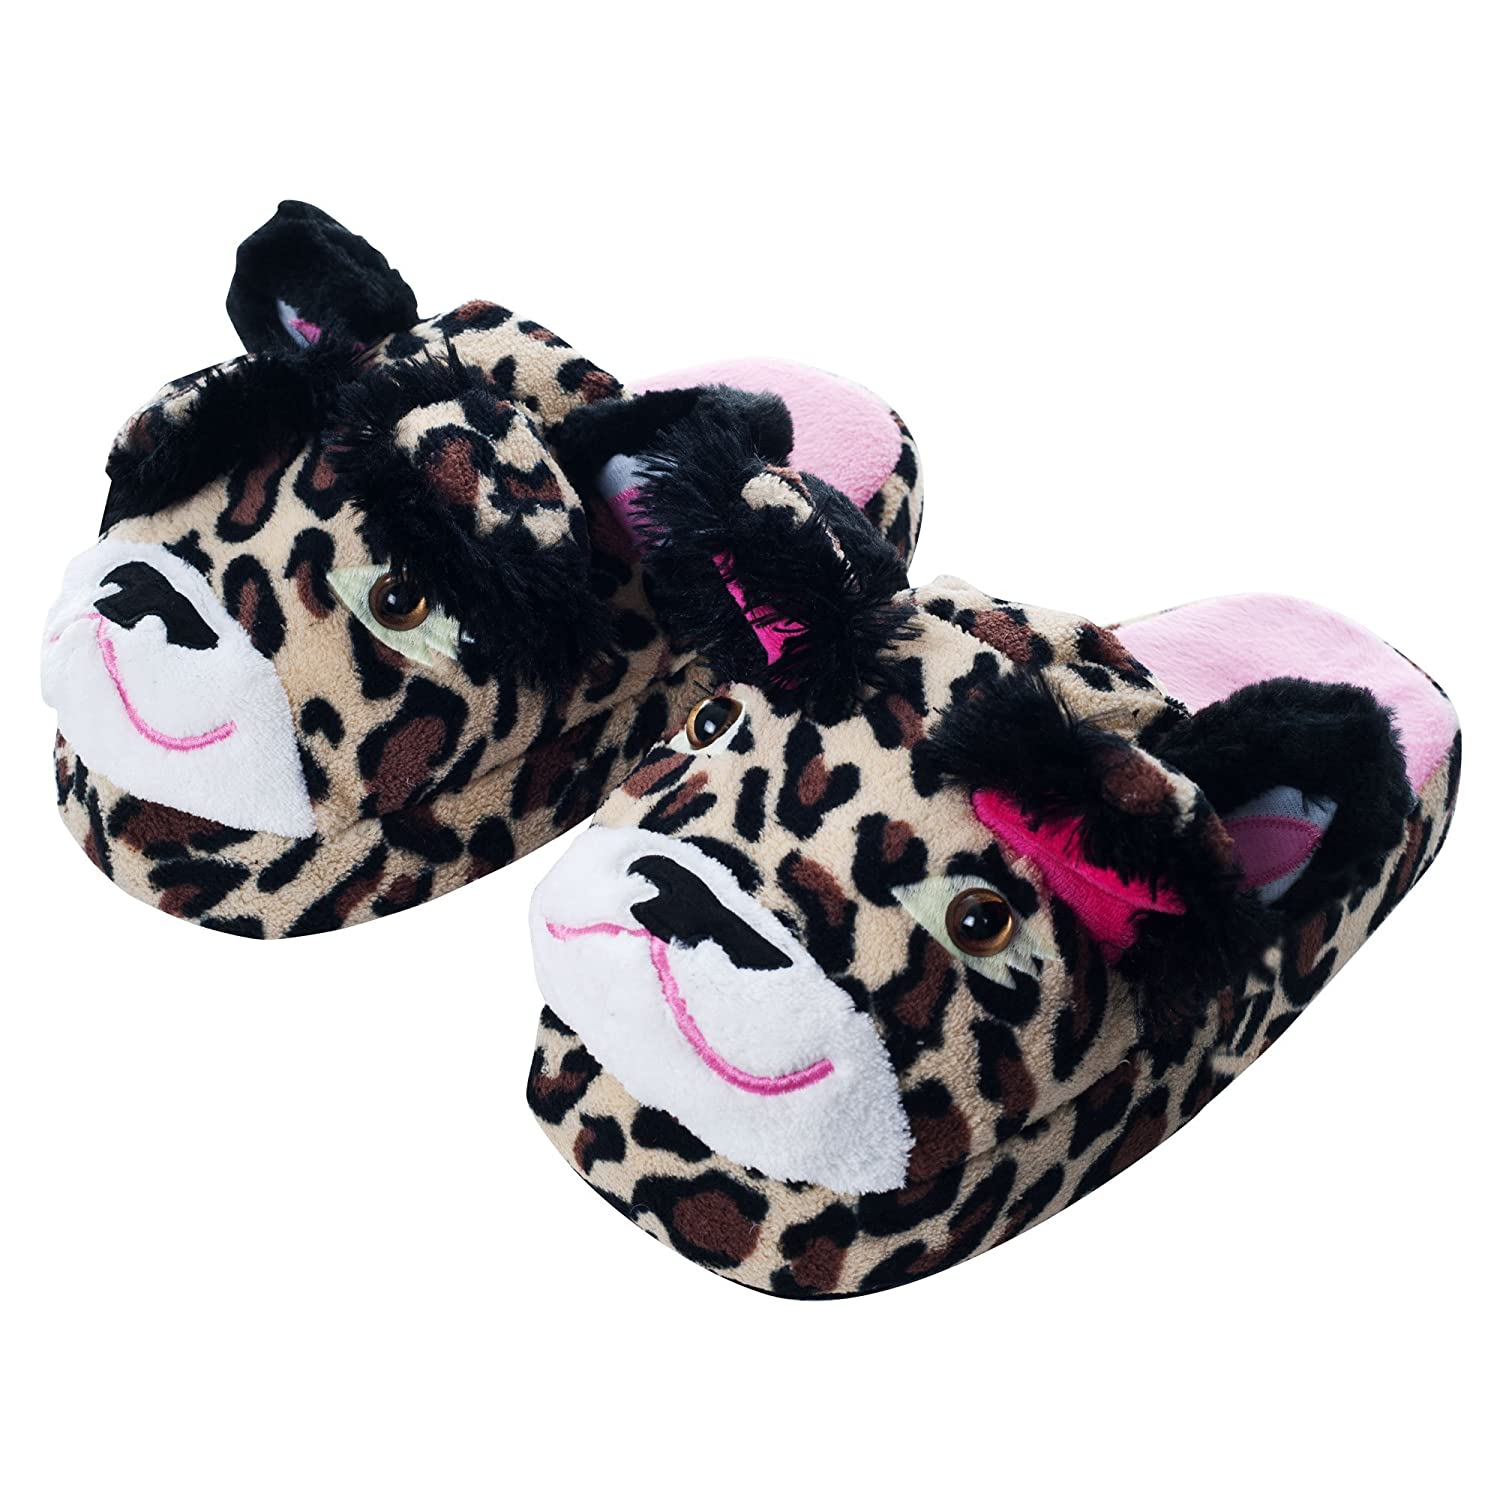 Silly Slippeez Leopard Plush Slippers